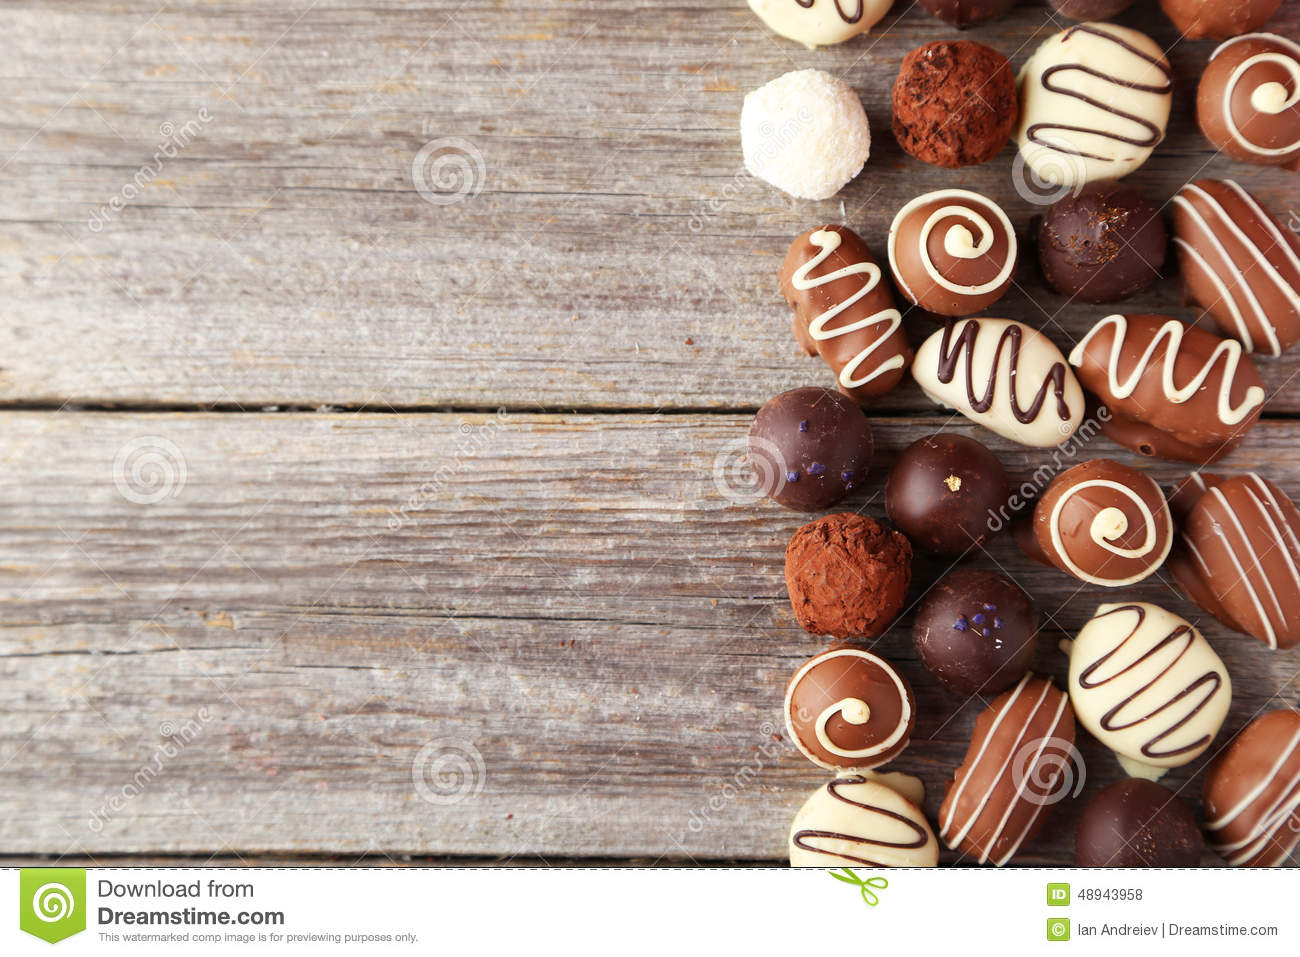 Chocolates on plate on a grey wooden background